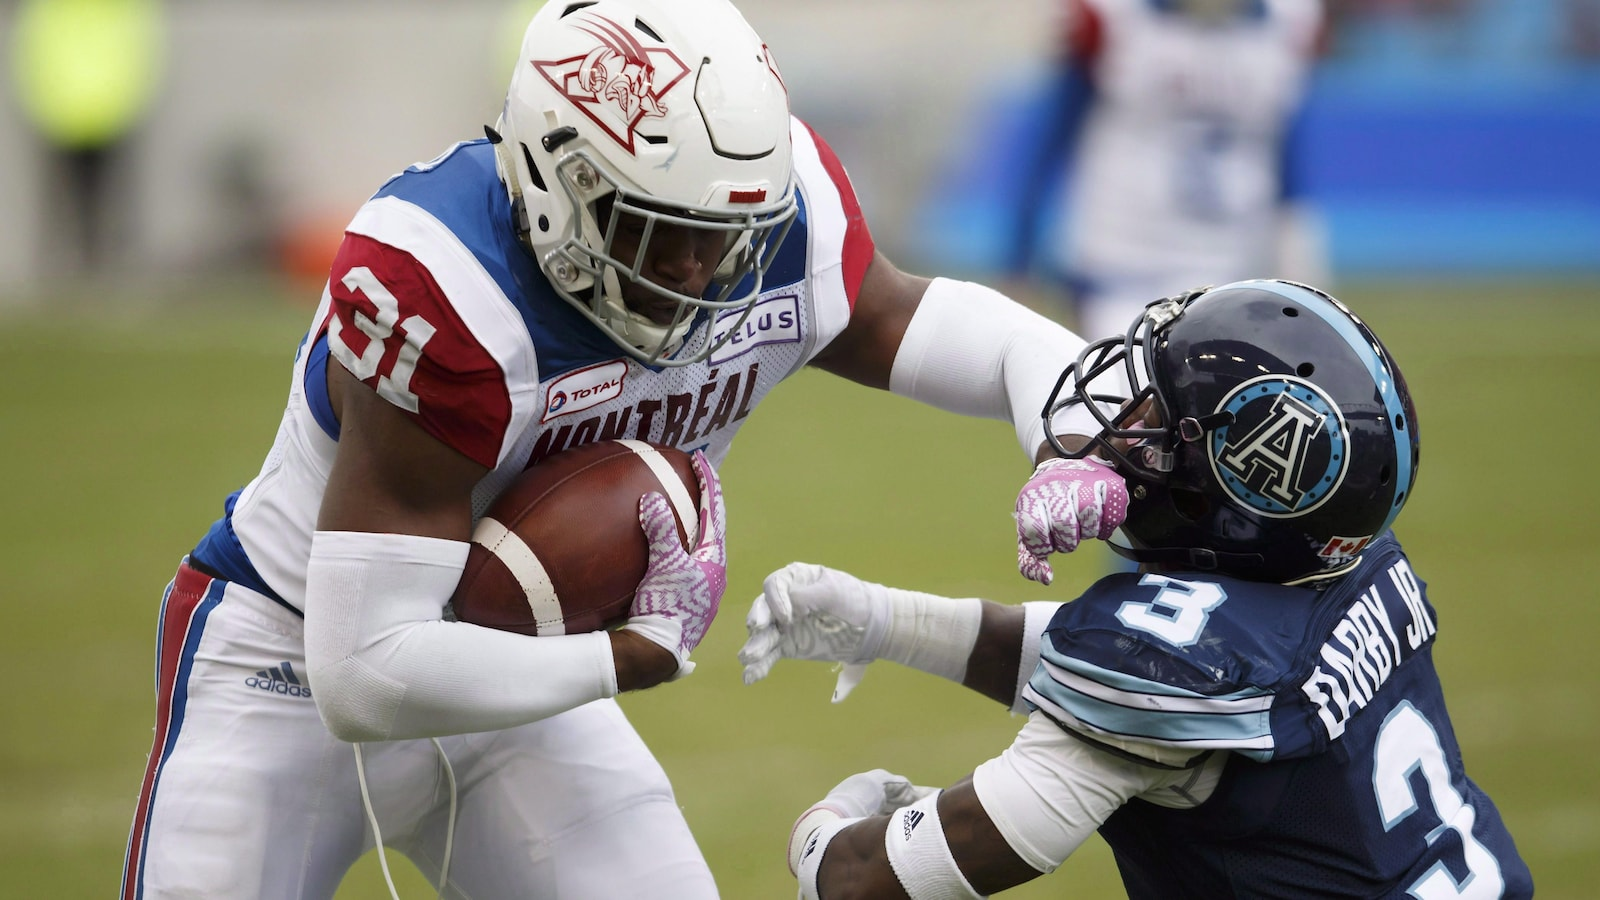 William Stanback des Alouettes bloque Alden Darby des Argonauts lors d'un match de la Ligue canadienne de football en octobre 2018.